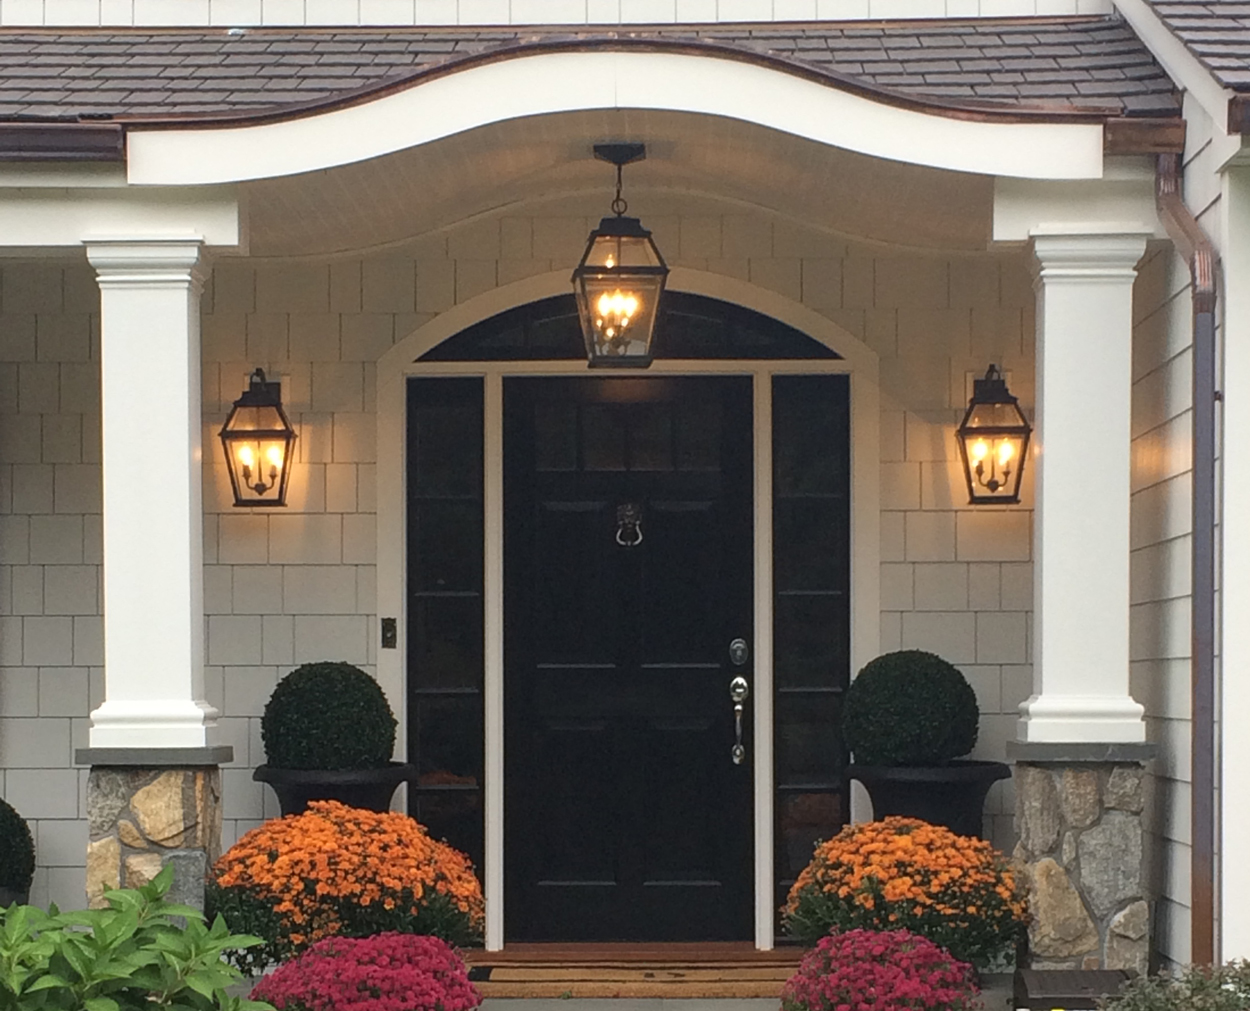 Black front door with columns and stone bases